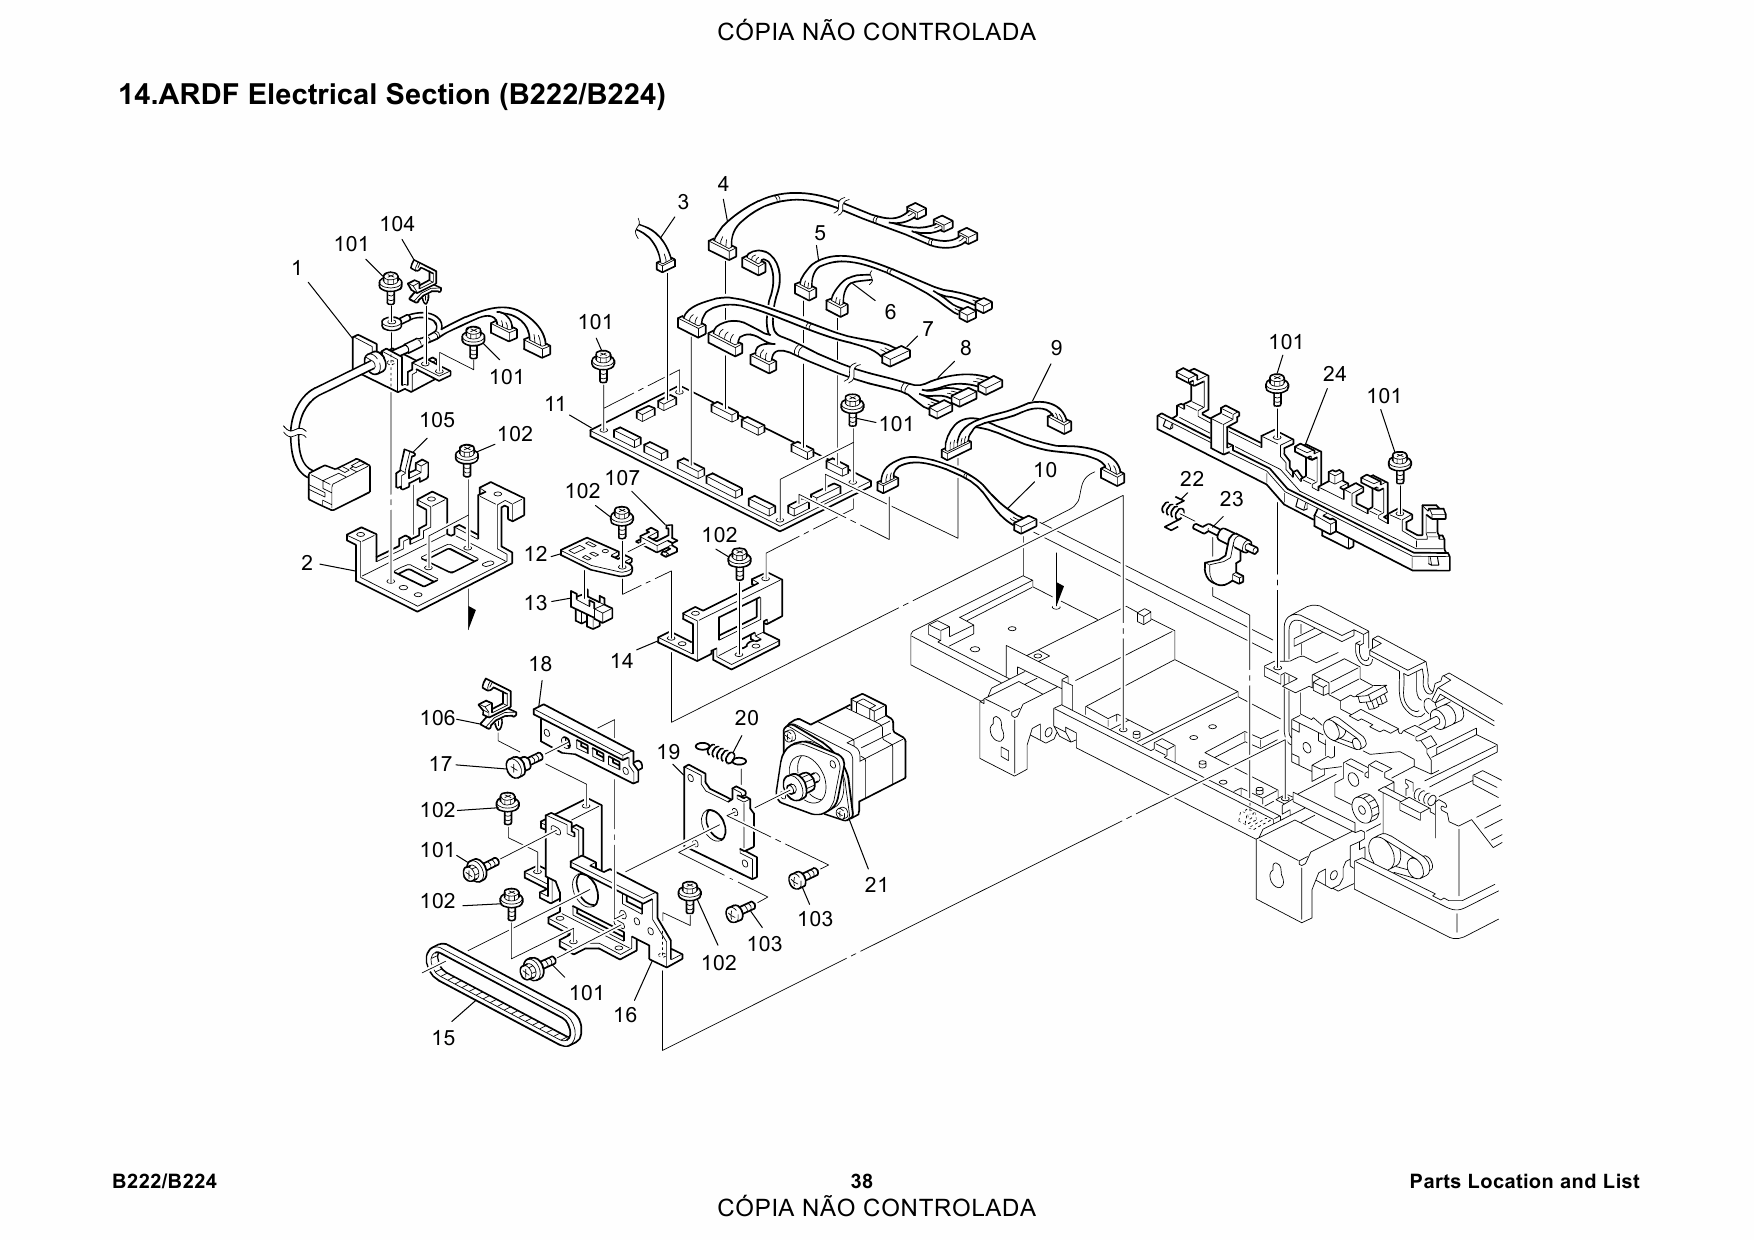 Hewlett Packard Wiring Diagram, Hewlett, Free Engine Image